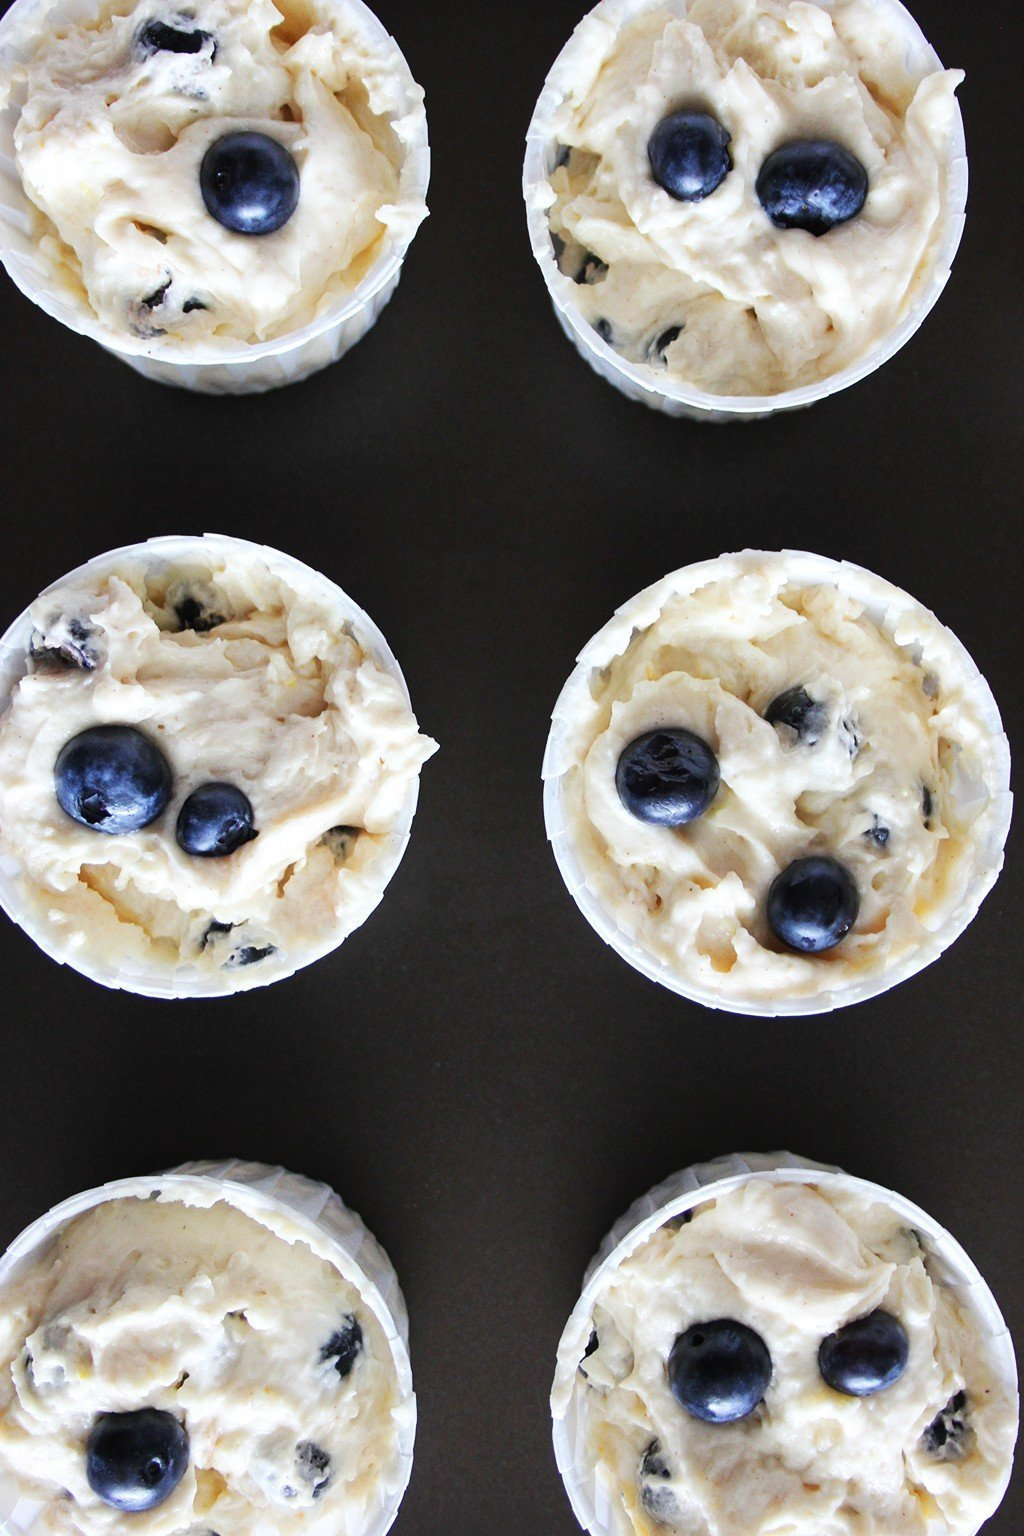 Muffin cups filled with blueberry muffin batter, topped with extra fresh blueberries